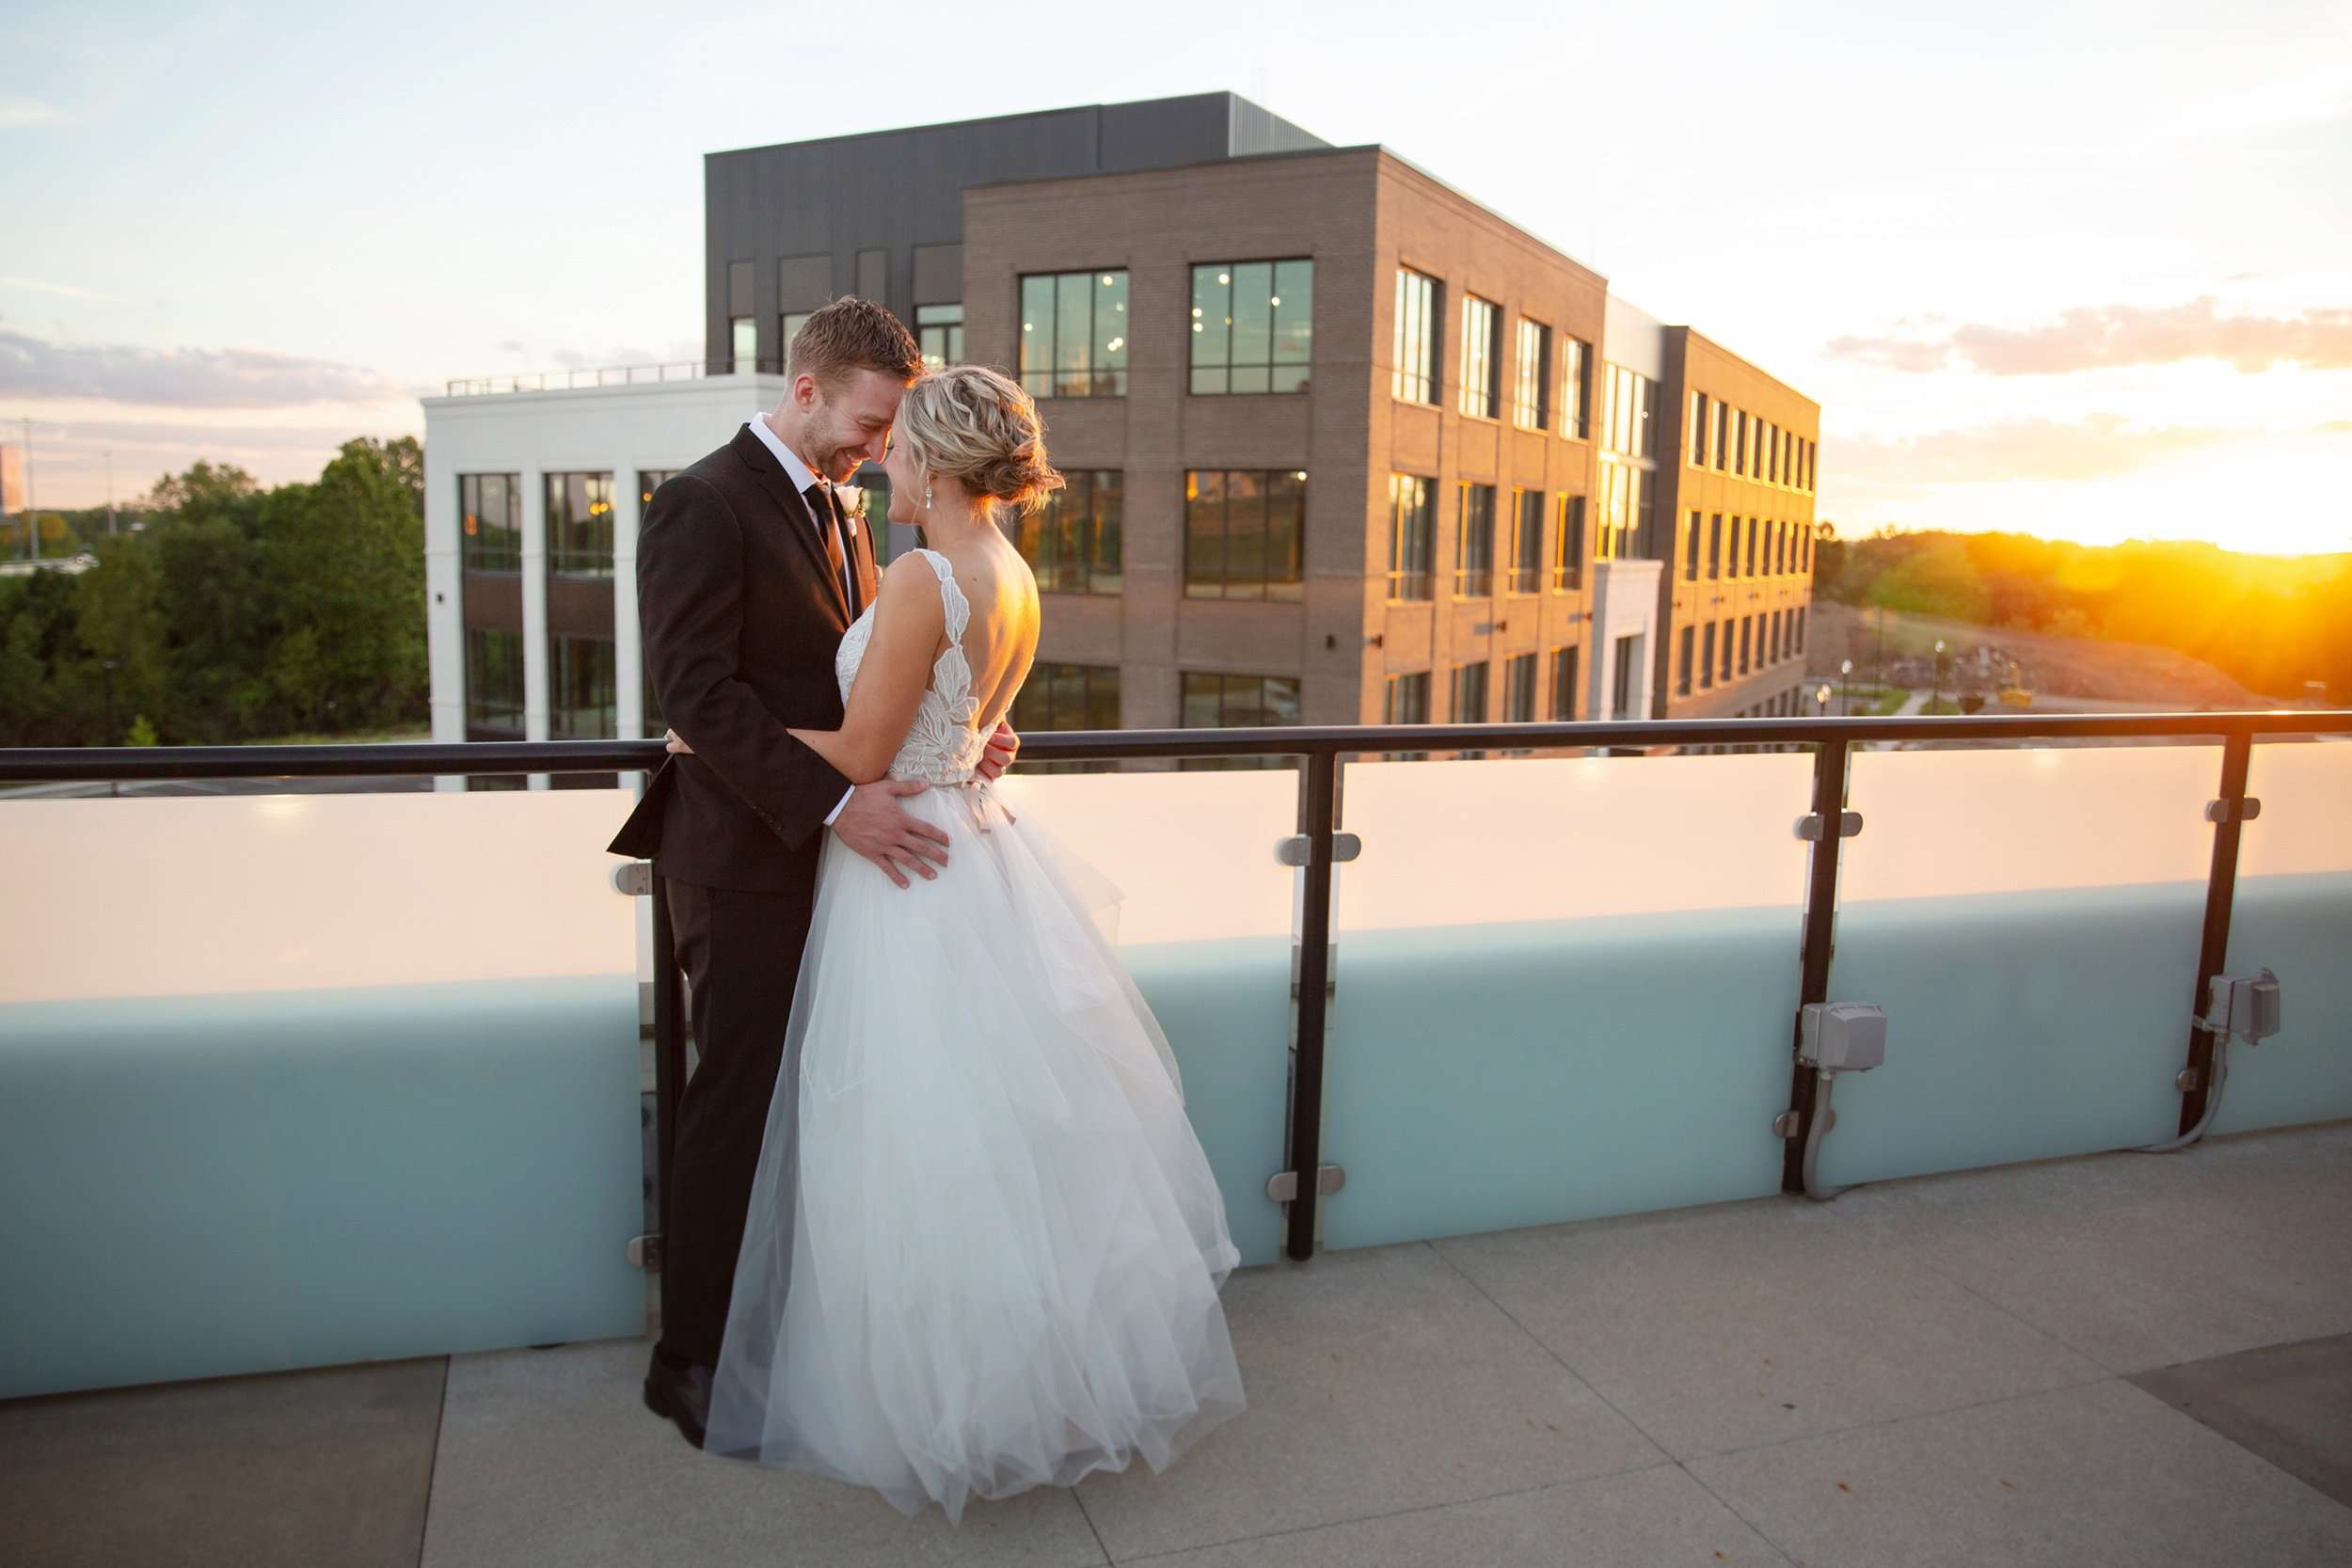 A bride and groom are smiling and holding each other close. The warm glow of the sun setting shines behind them.